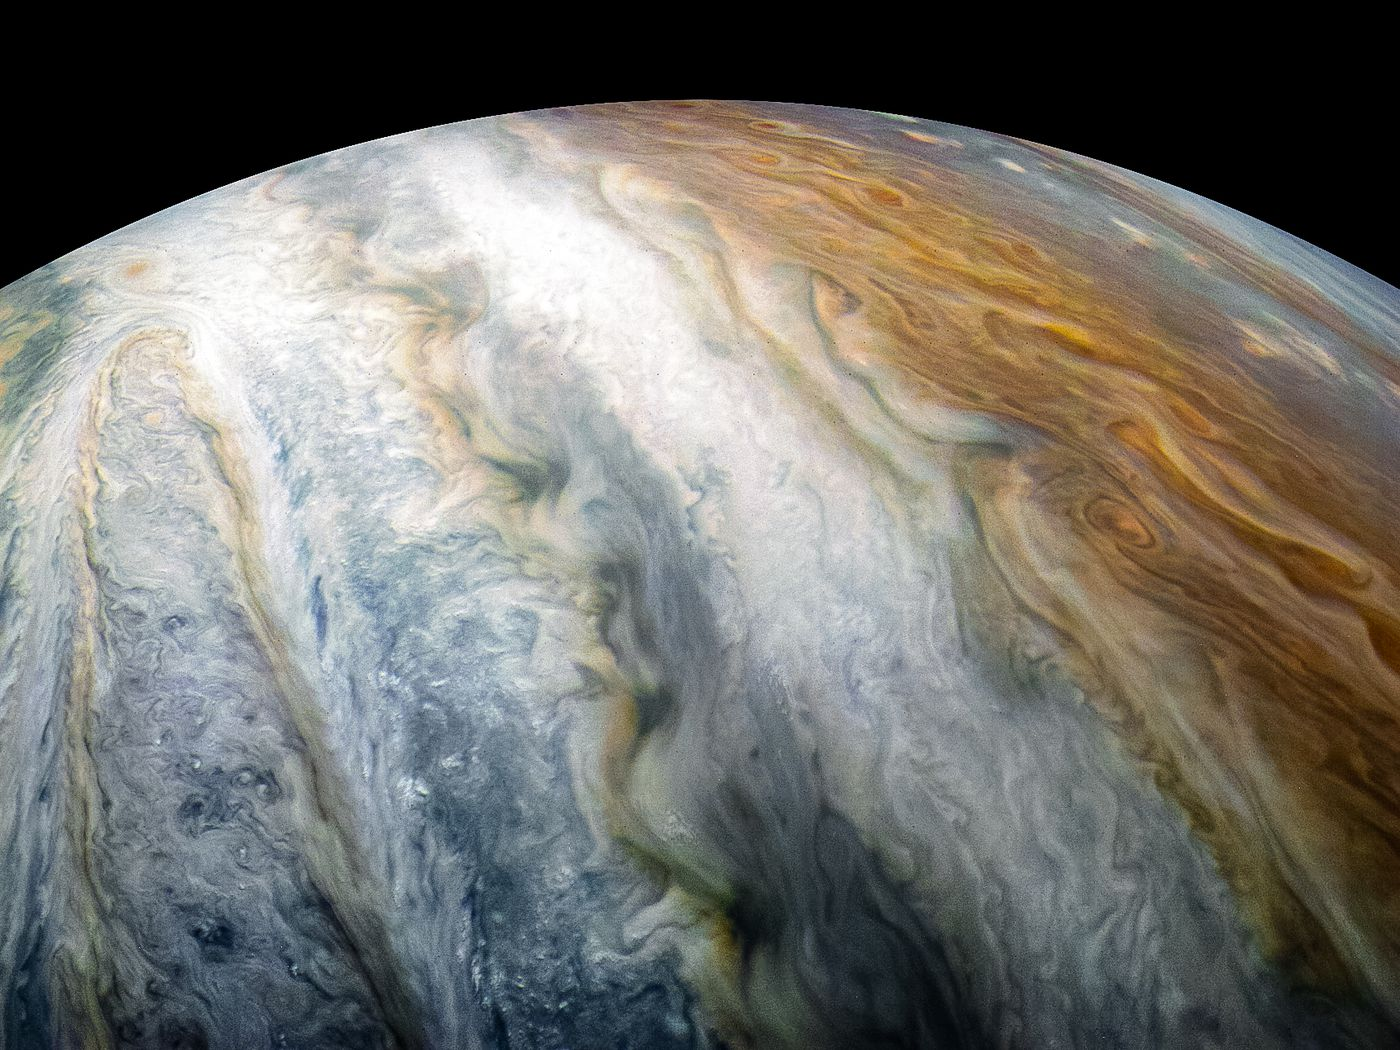 Jupiter at opposition: Monday is the best night to look at